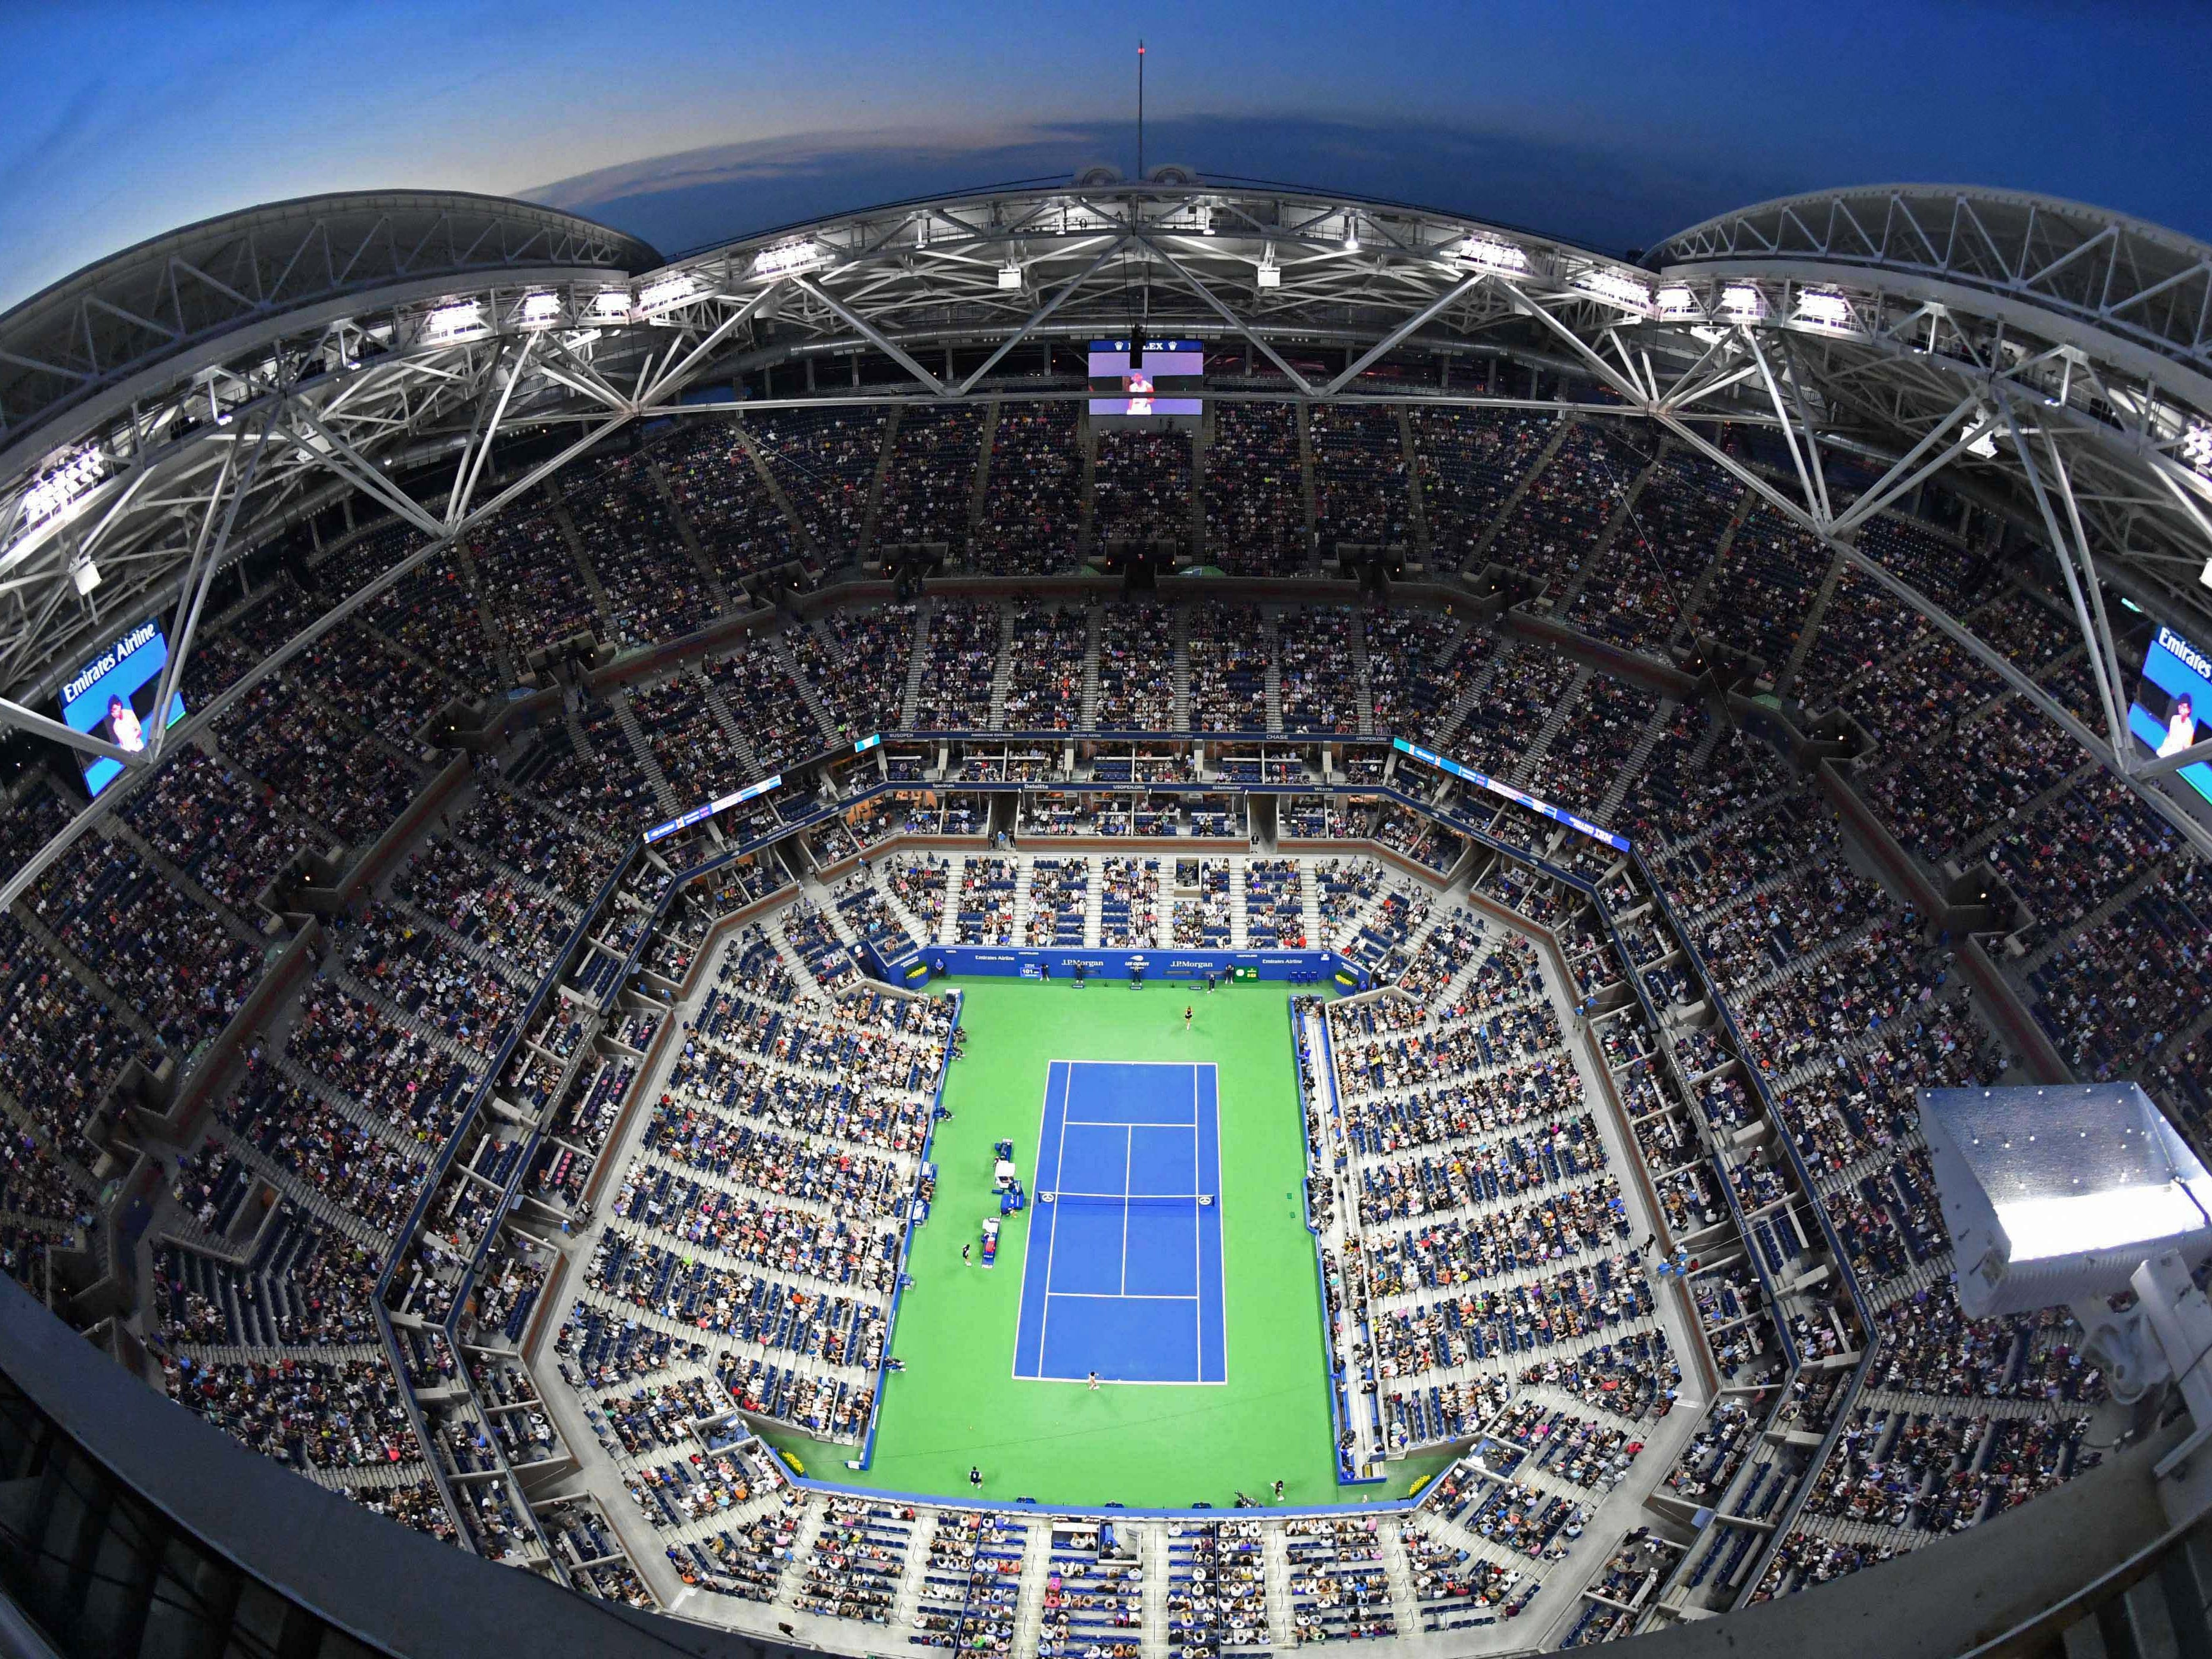 A full house at Arthur Ashe stadium awaits a fourth-round night match between Maria Sharapova and Carla Suarez Navarro.